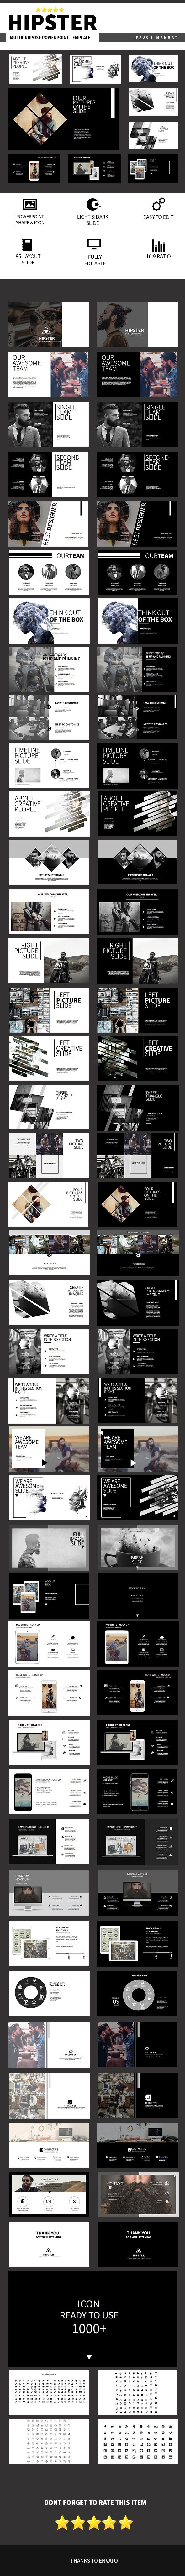 Hipster Multipurpose PowerPoint Template  #tech #advertisement • Download ➝ https://graphicriver.net/item/hipster-multipurpose-powerpoint-template/17985322?ref=pxcr